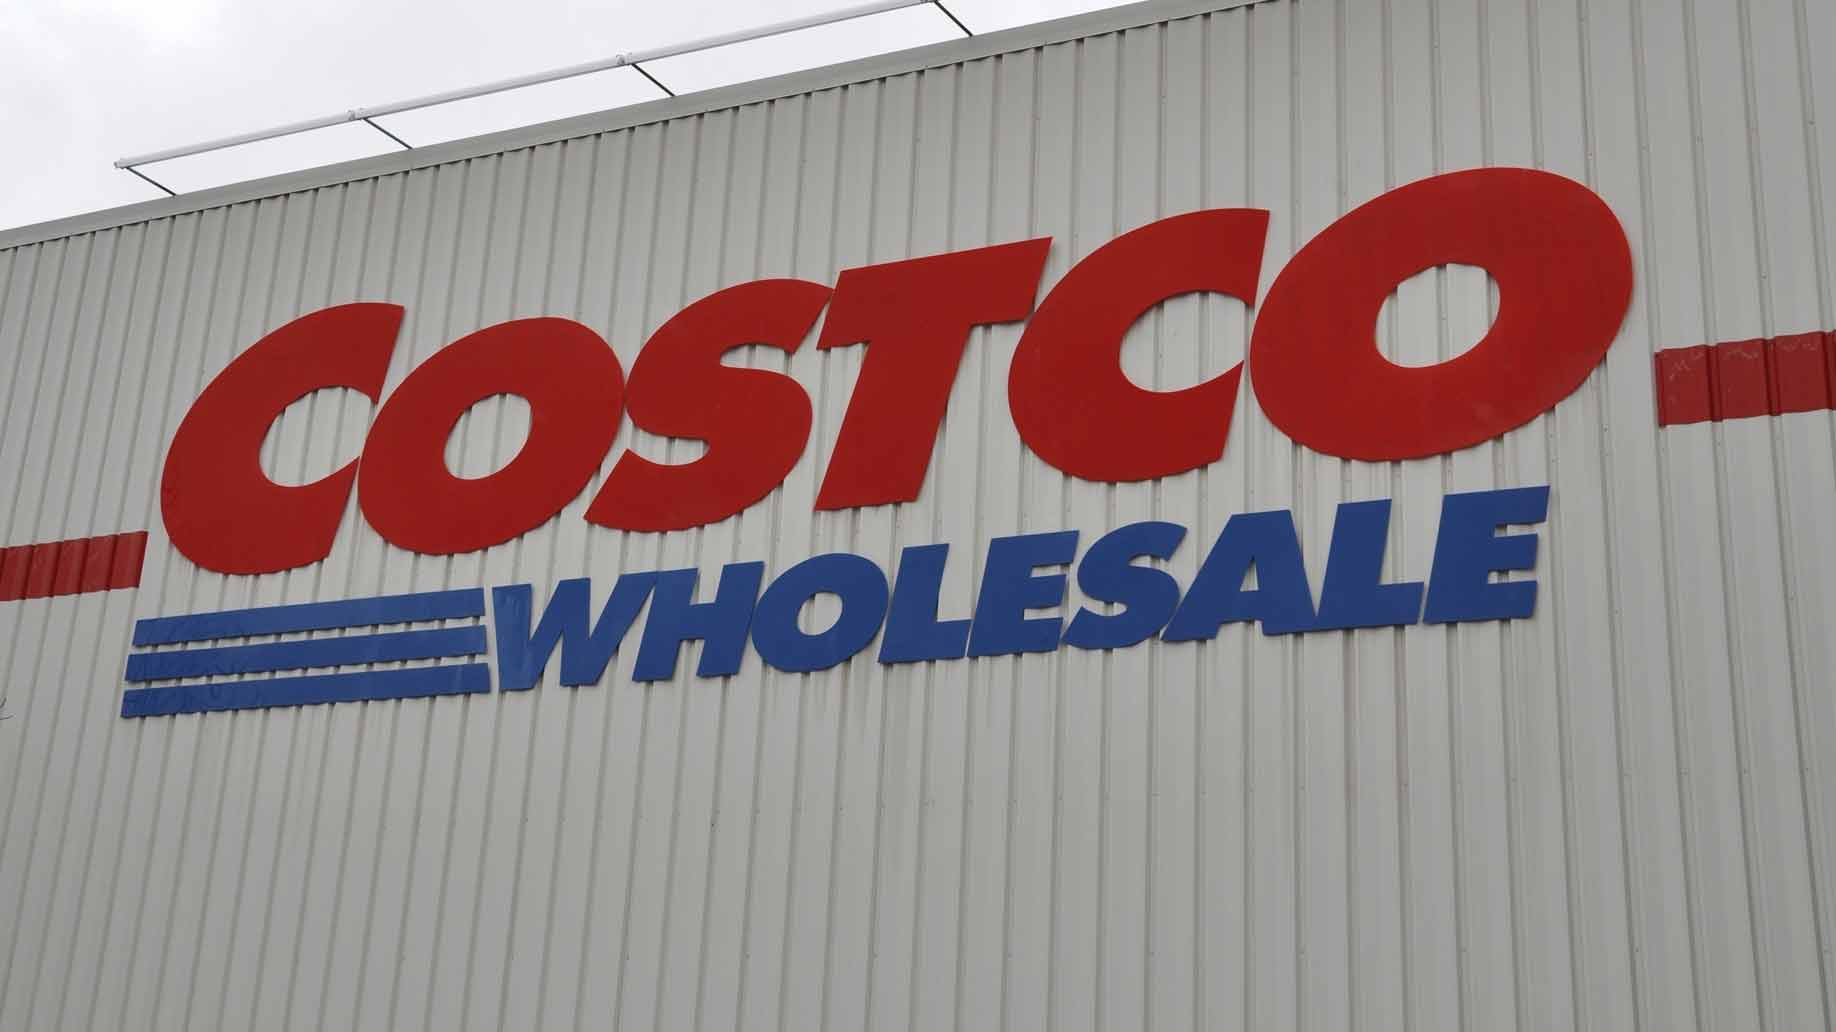 Is a warehouse store costco sams club bjs membership worth it costco photo by lester balajadia colourmoves